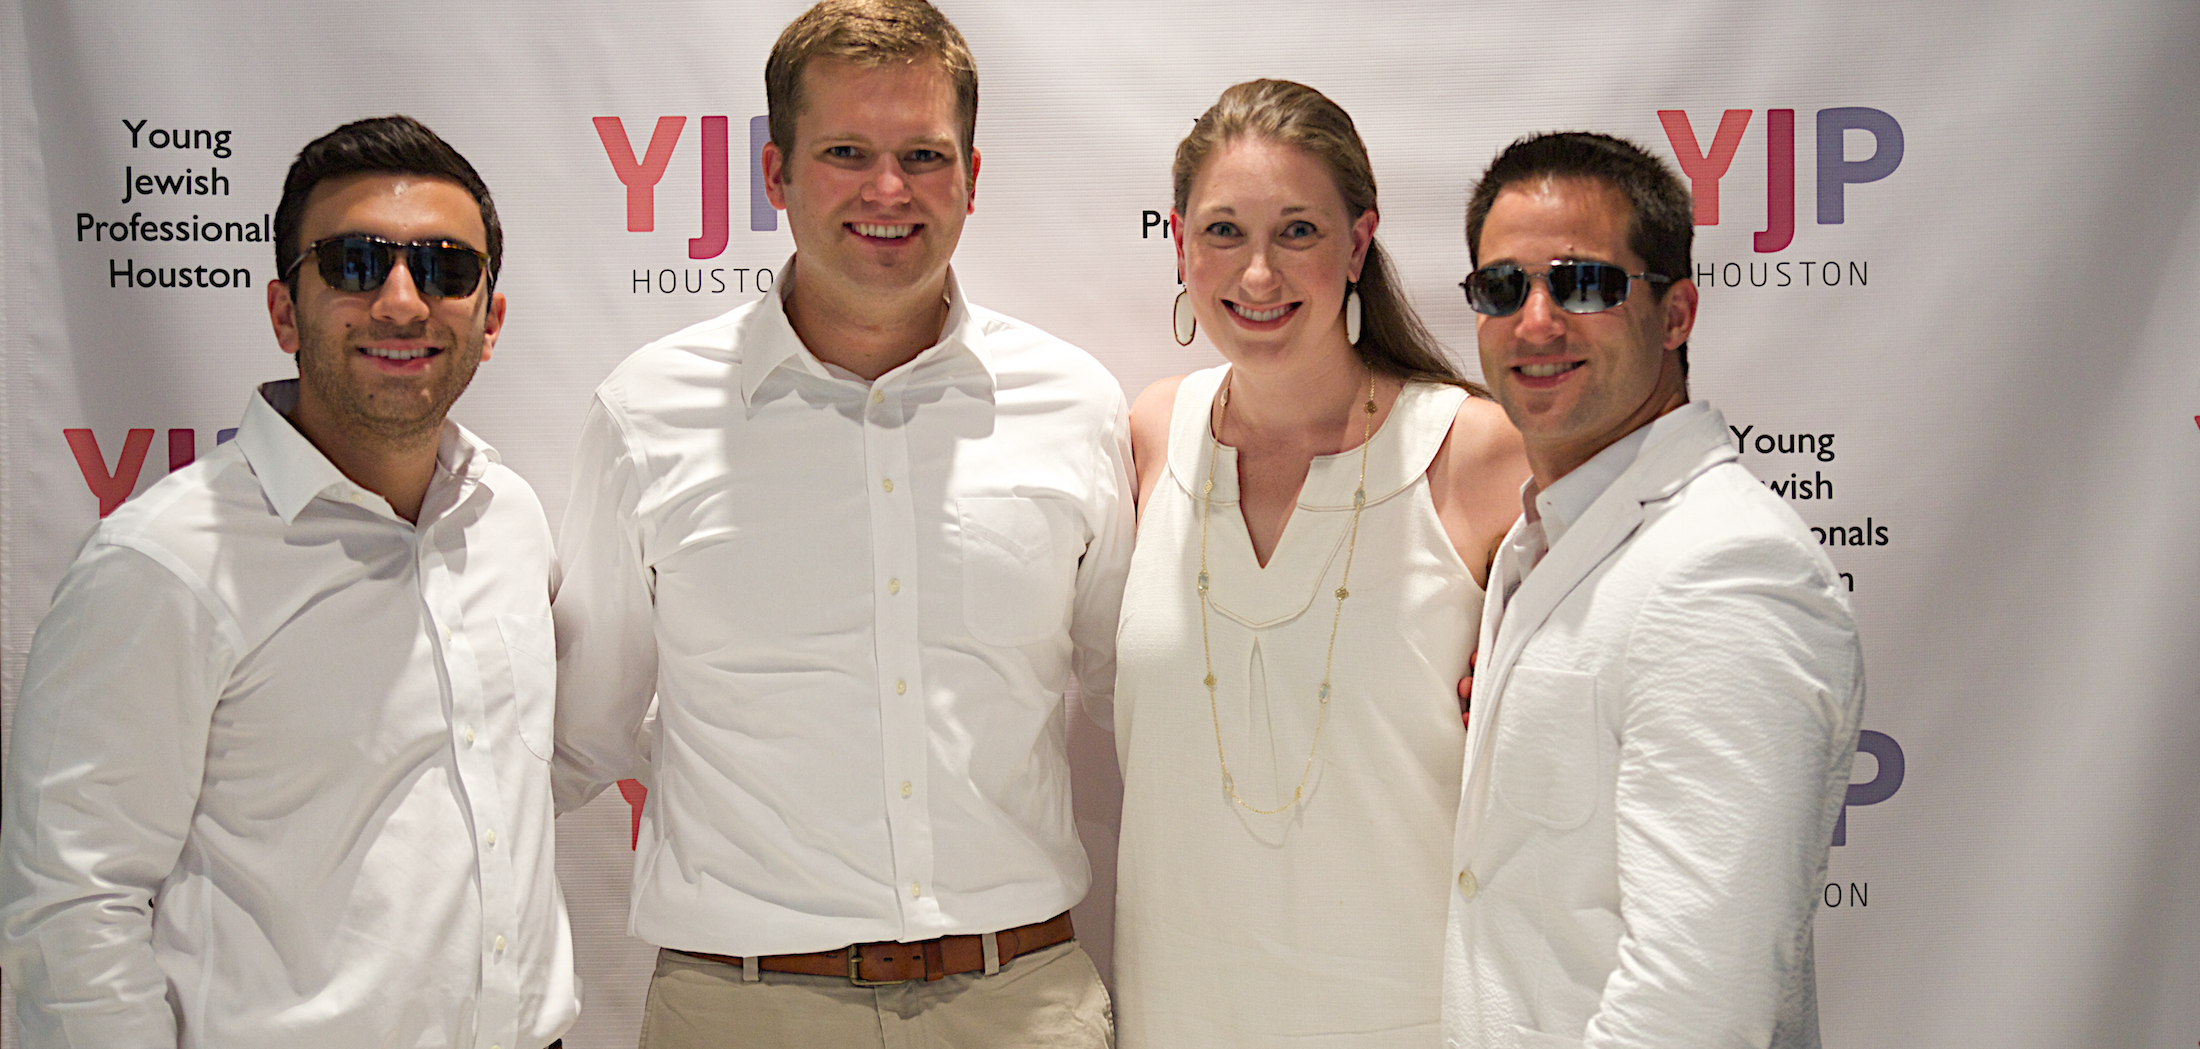 backdrop-yjphouston-white-party-2015